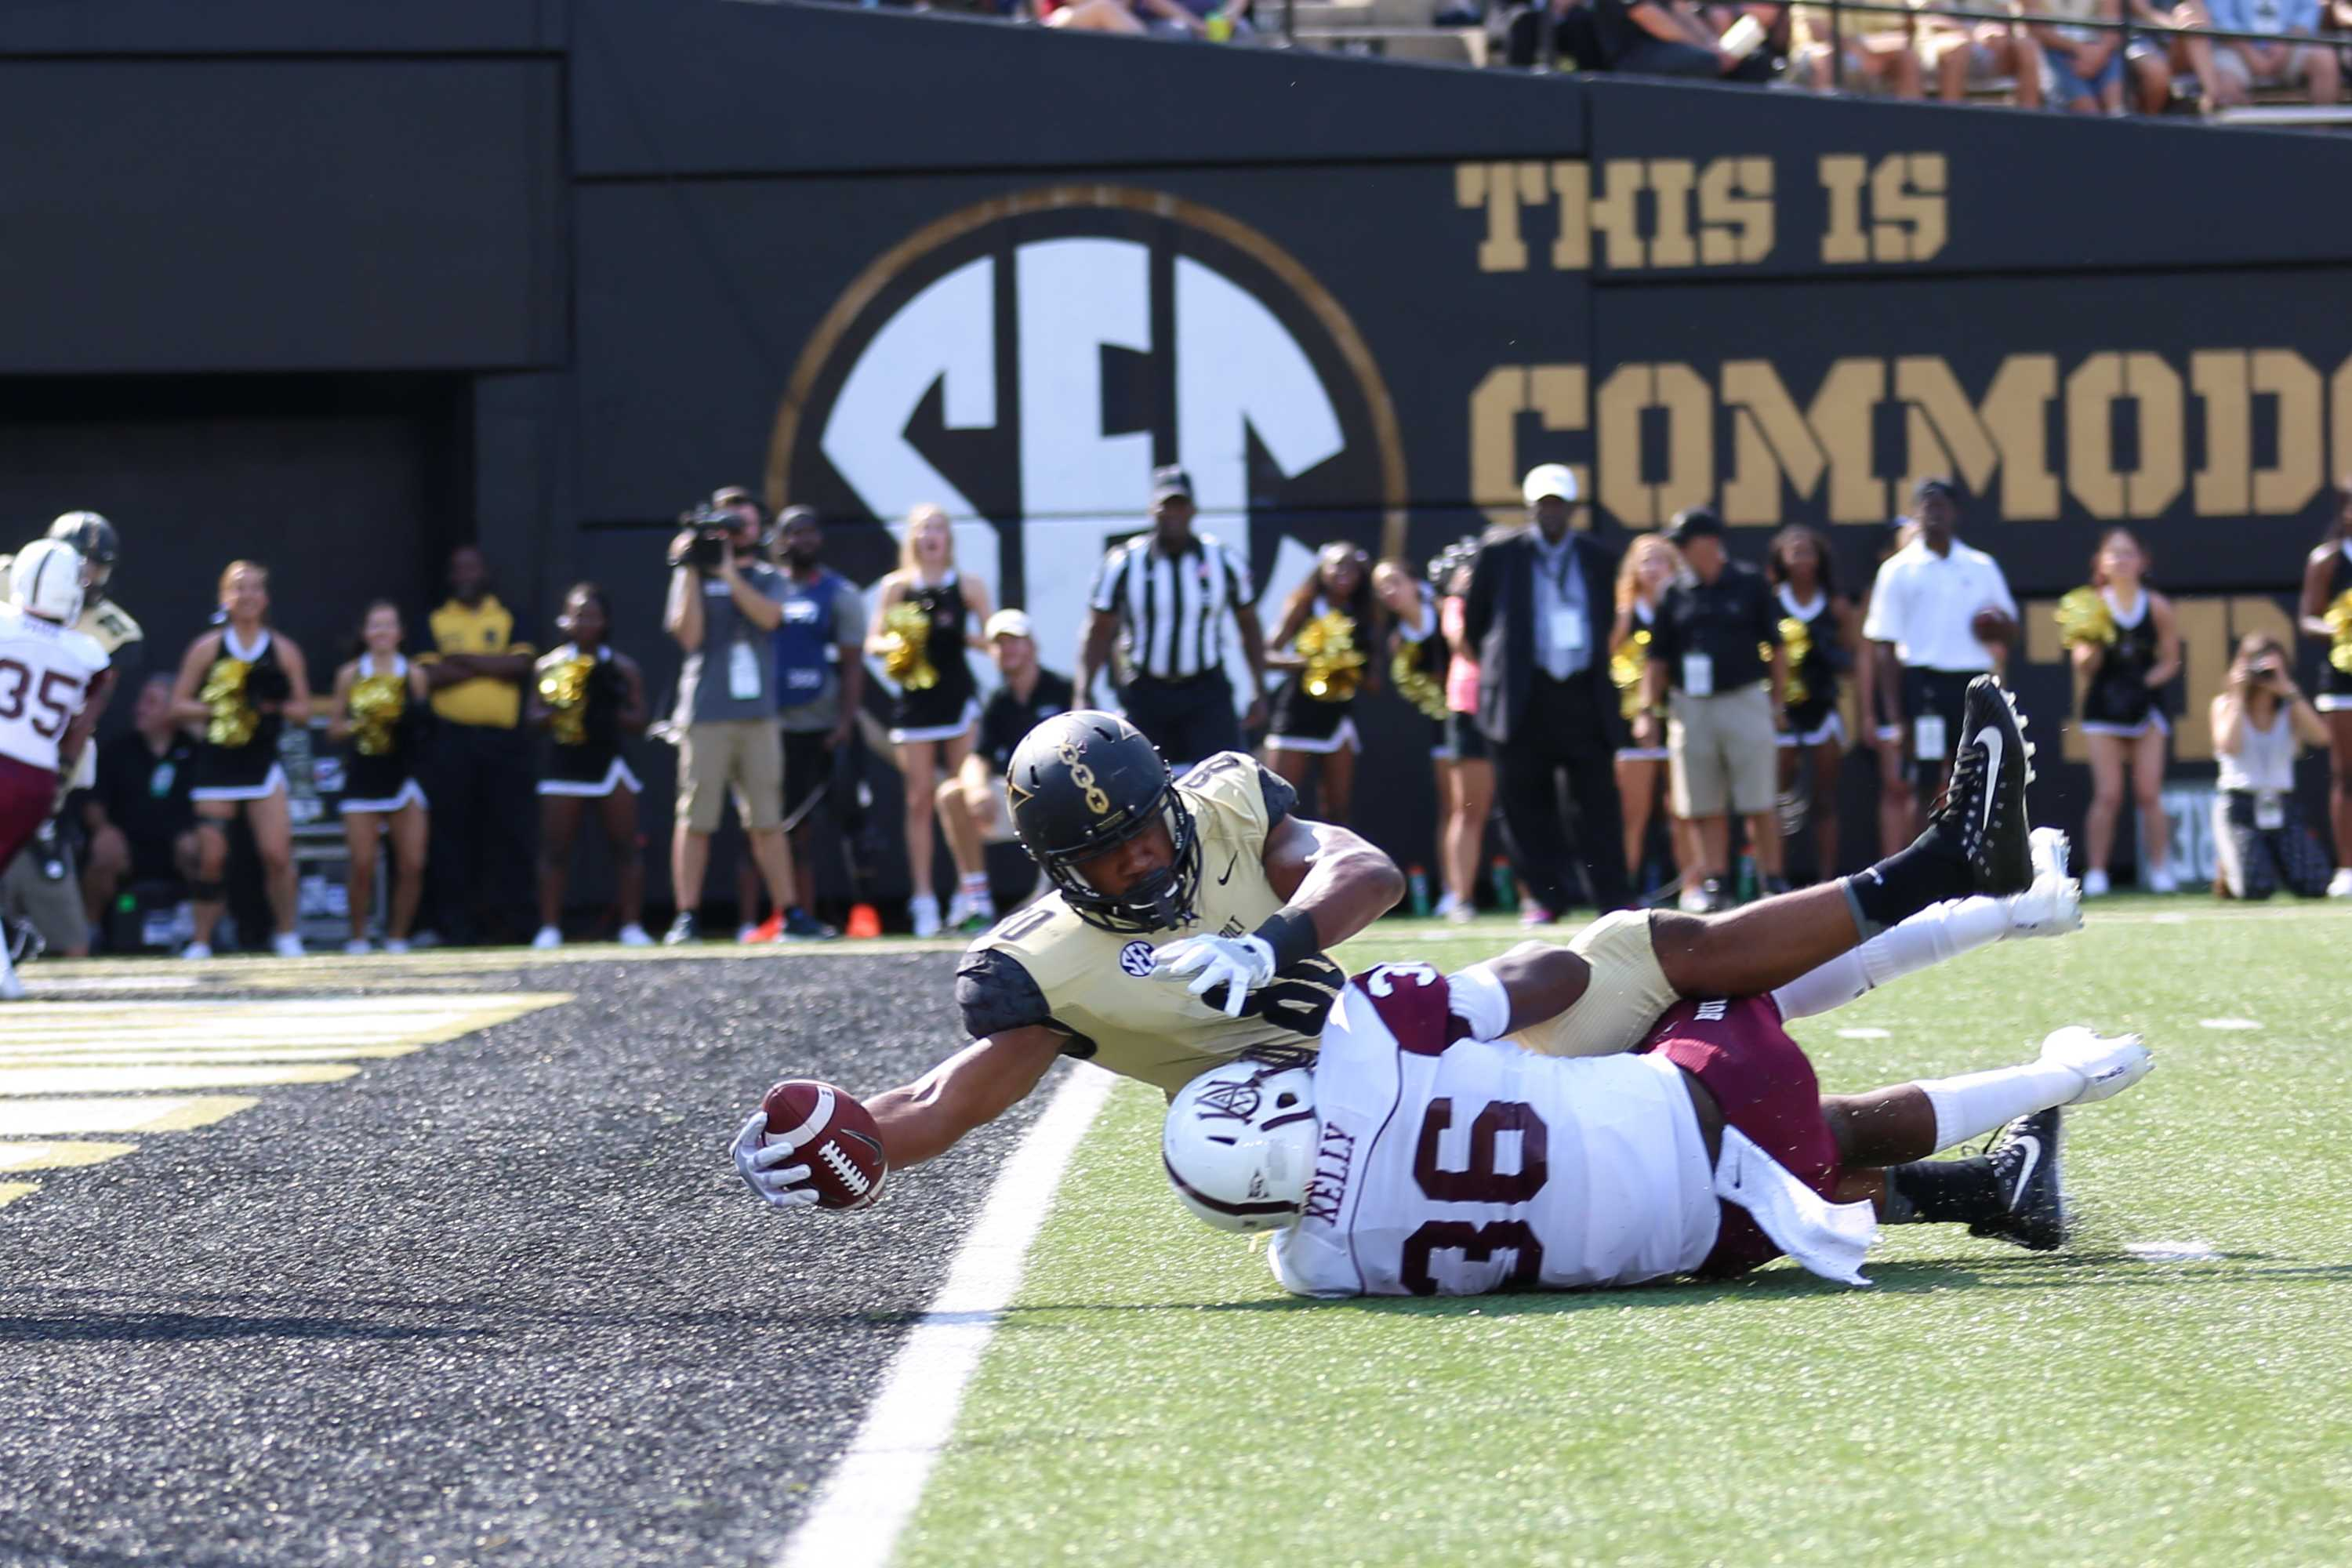 Jared Pinkney reaches across the goal line for a touchdown in Vanderbilt's home victory over Alabama A&M on September 9, 2017. Photo by Claire Barnett.